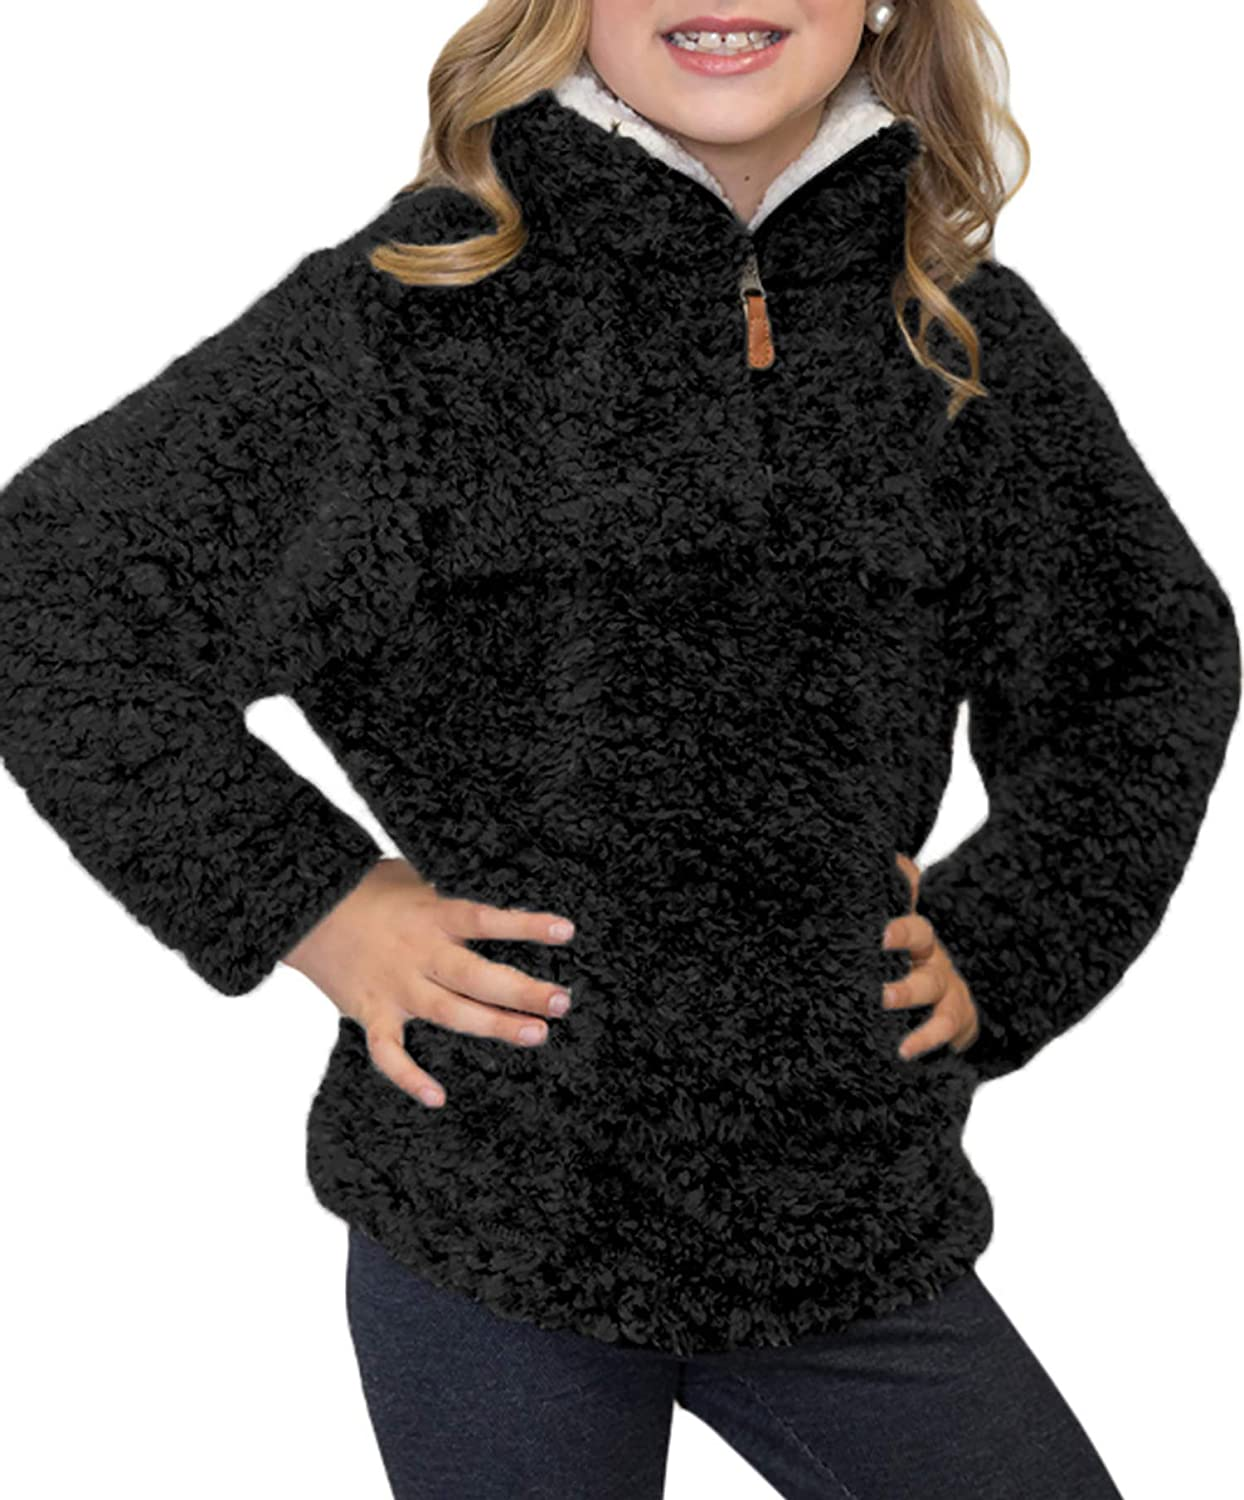 Blibea Girls Fashion Zipper Neck Fluffy Fleece Sweatshirt Pullover Outwear BUT25034-P